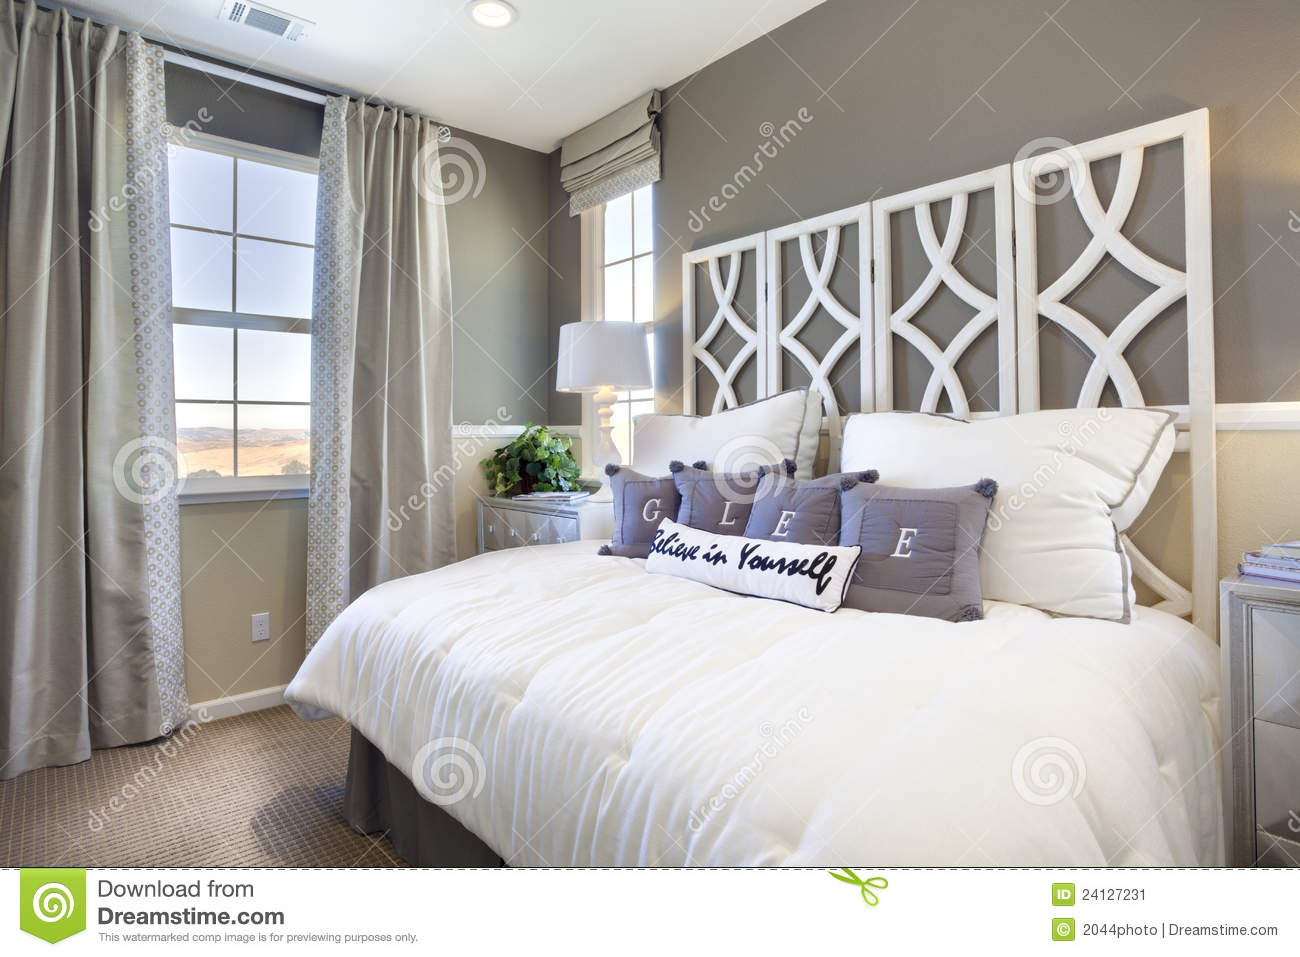 chambre coucher de maison mod le taupe et blanc image stock image 24127231. Black Bedroom Furniture Sets. Home Design Ideas